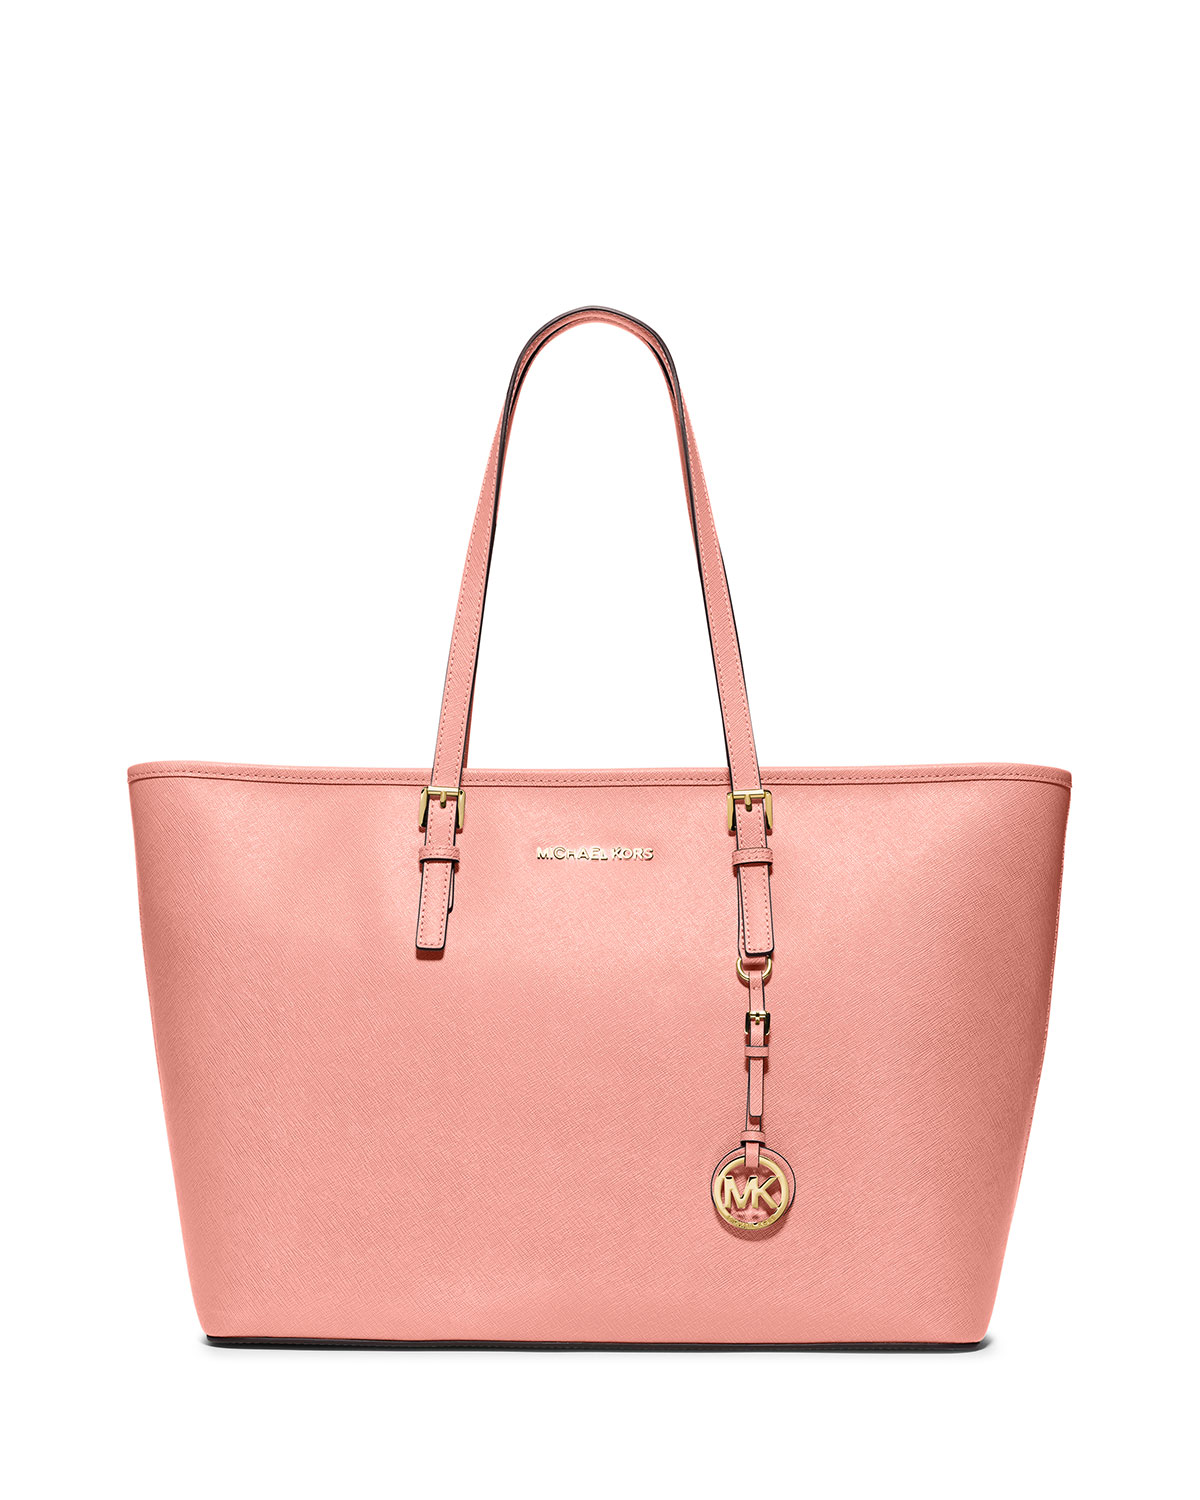 92461a63f7705e MICHAEL Michael Kors Jet Set Travel Medium Saffiano Multi-Function Tote Bag,  Pale Pink